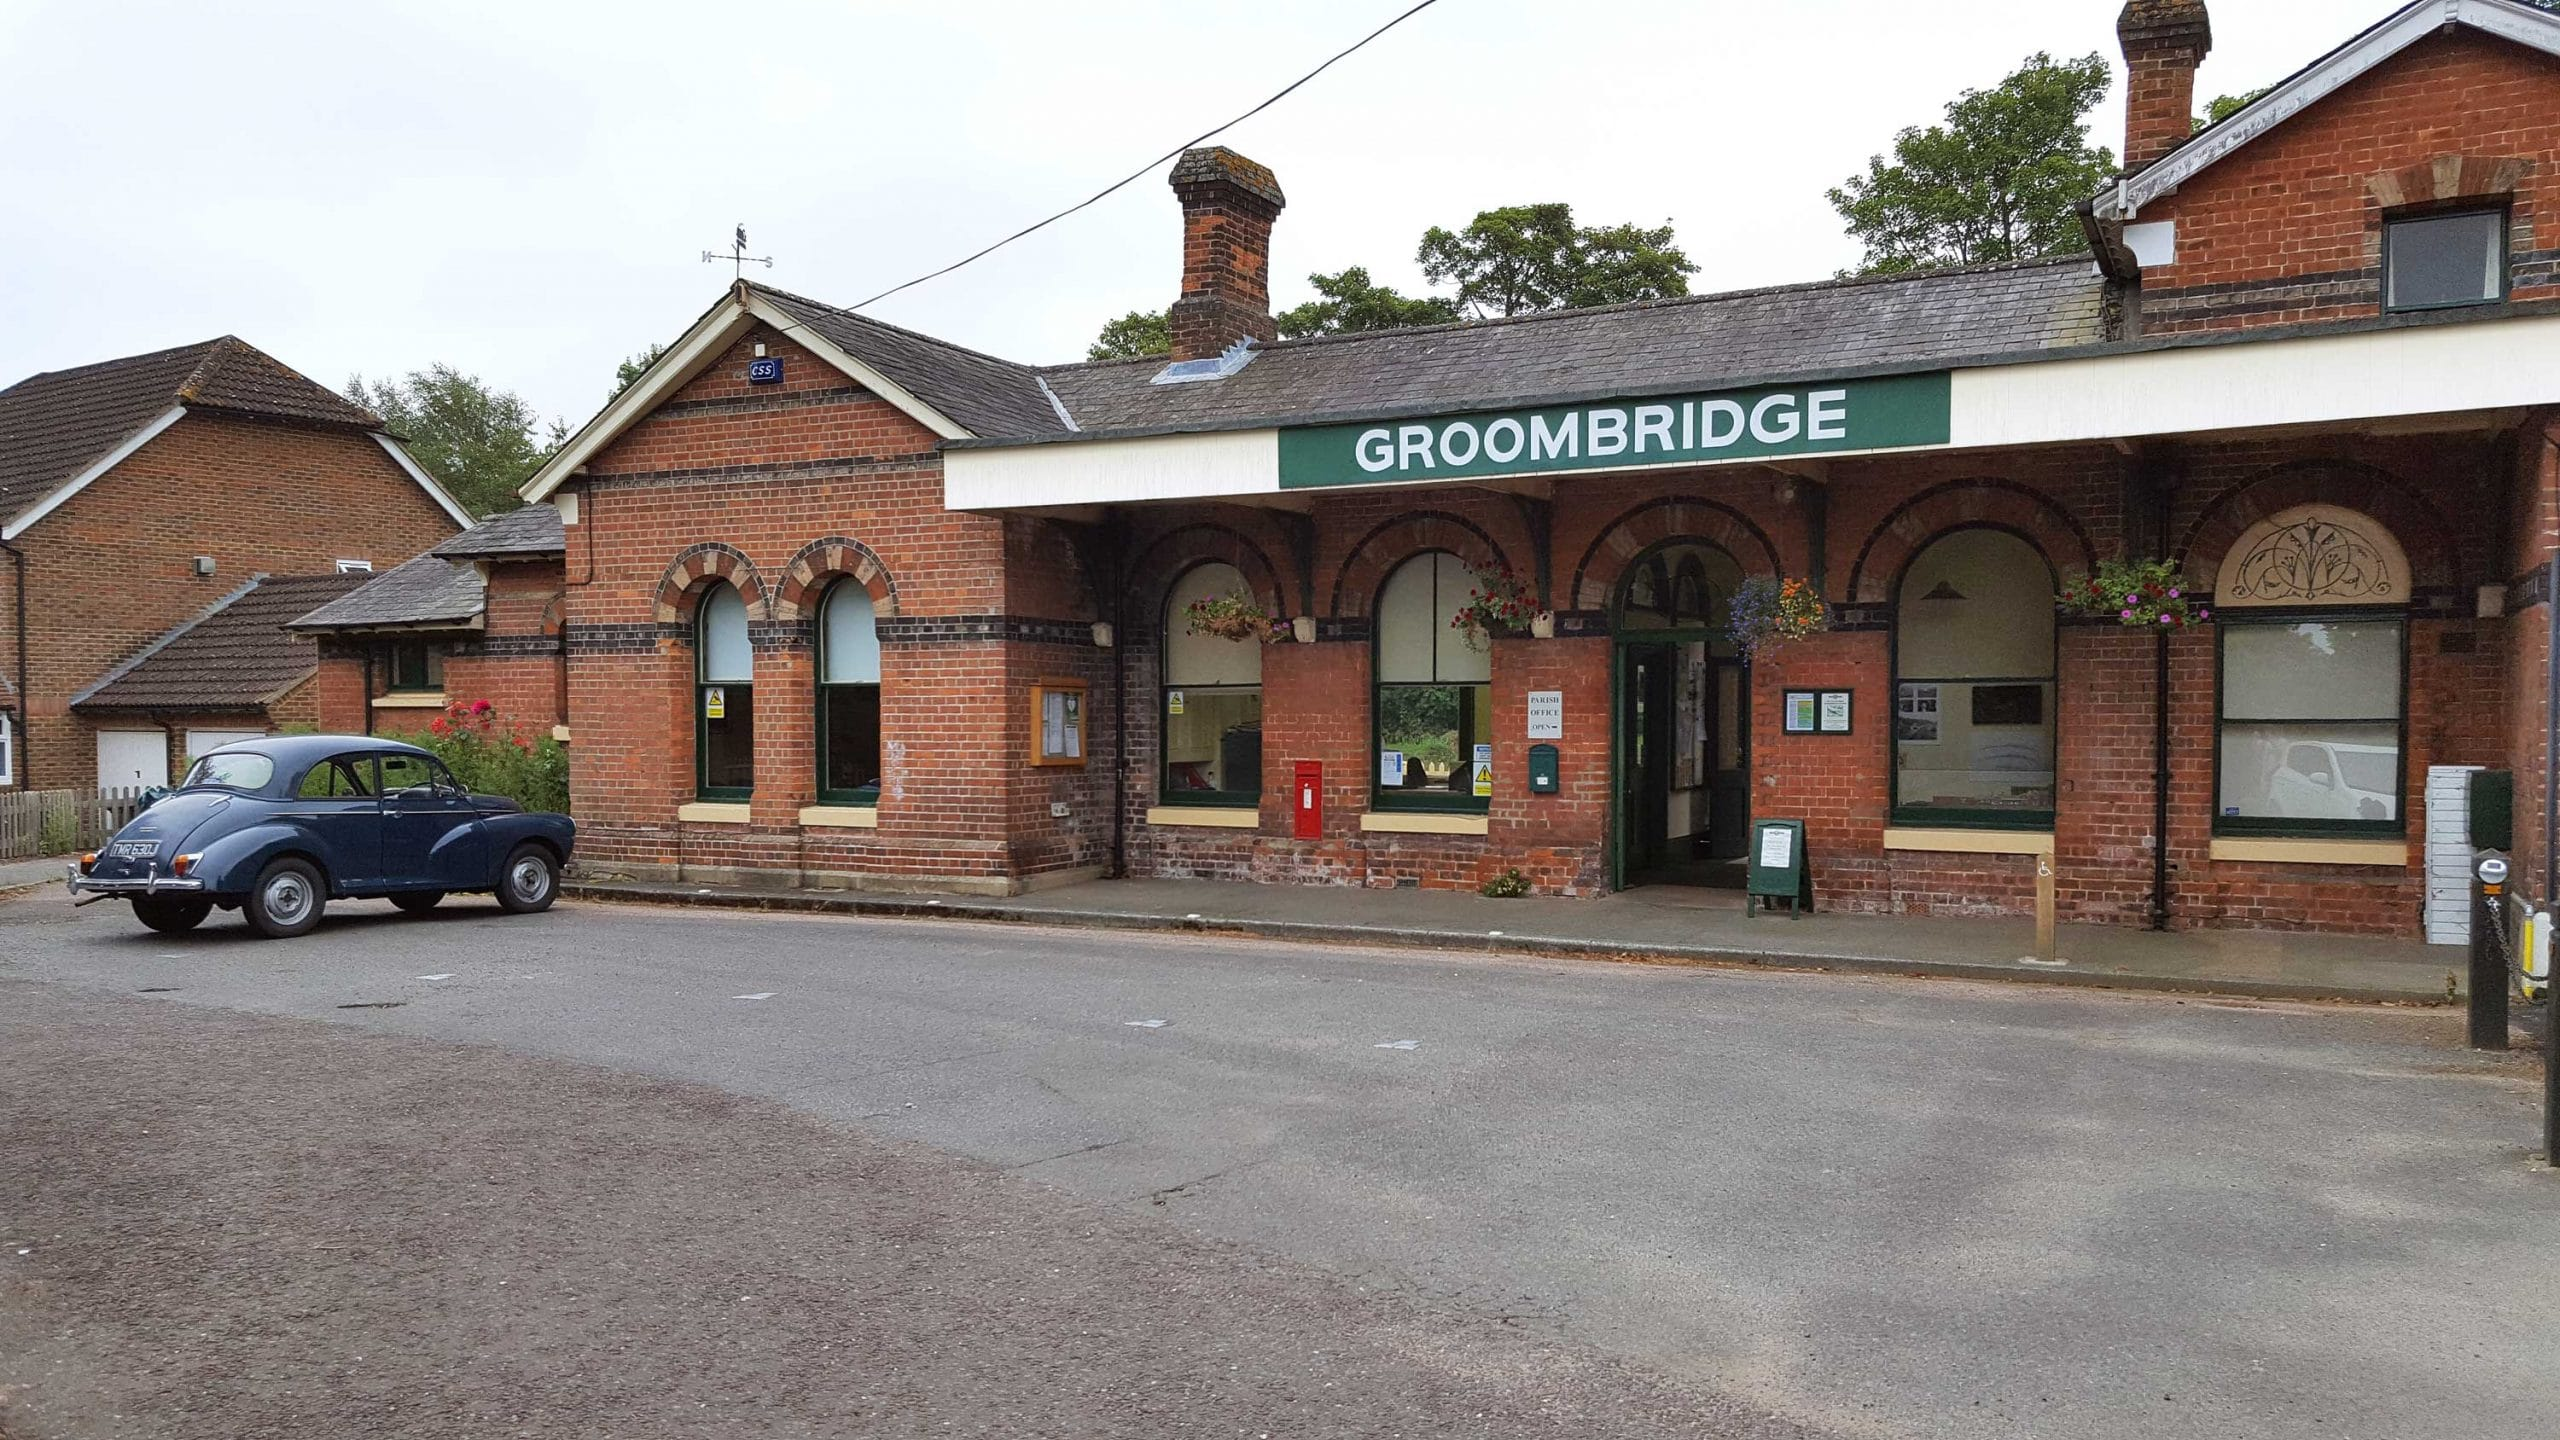 Withyham Parish Council Offices at the old Groombridge Station